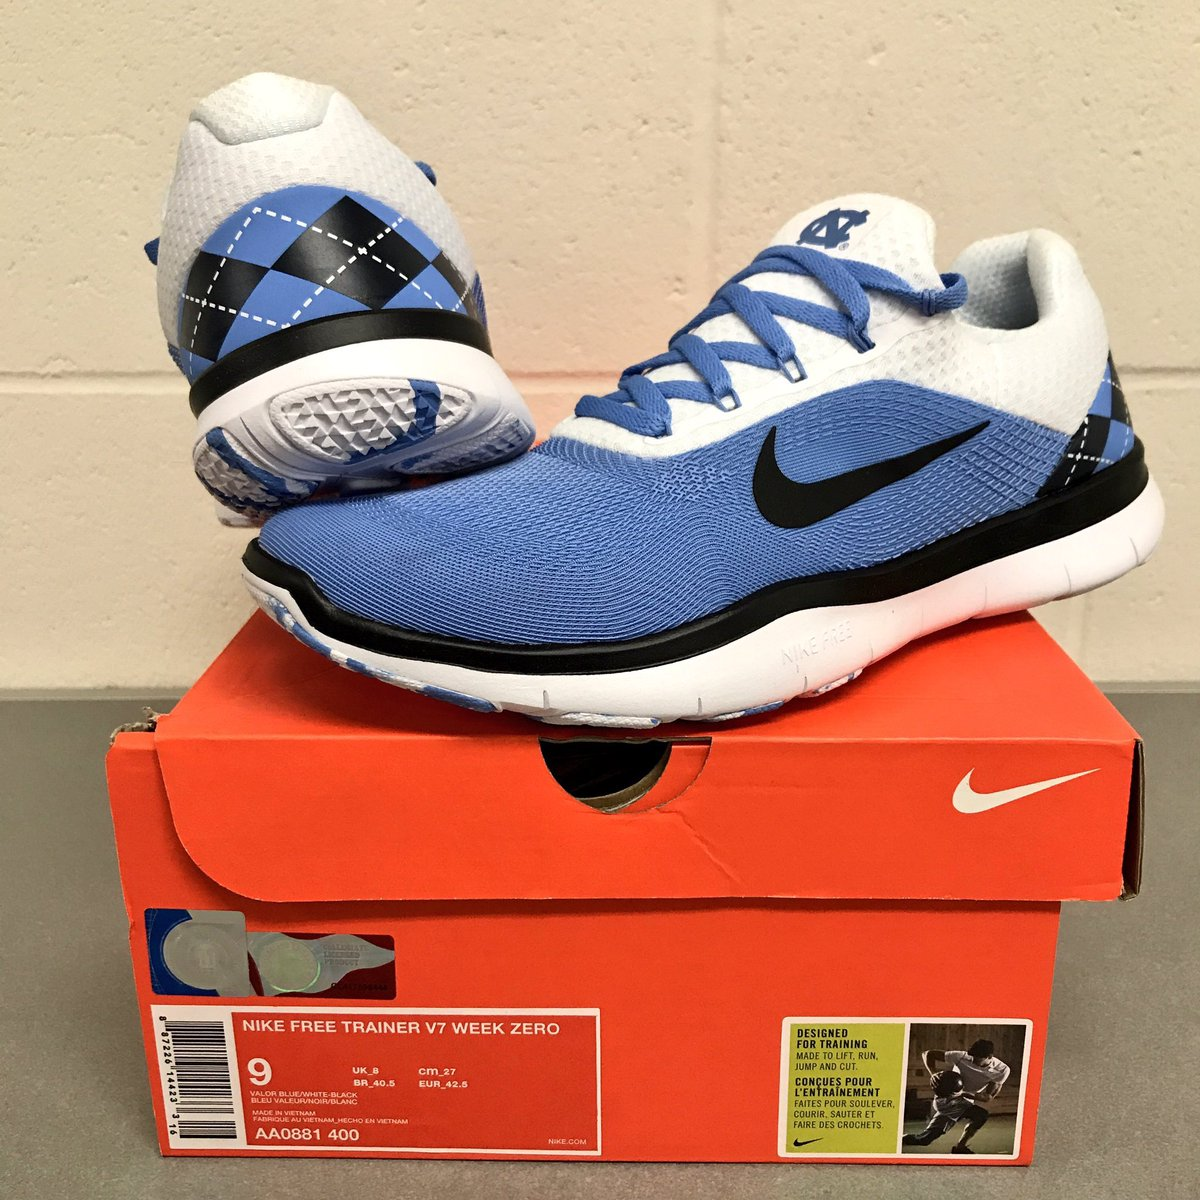 cc01d2321d650 ... 5.0 shoes 6dc10 271d7  cheap unc wrestling on twitter whos excited to  get their new pair of nike custom unc